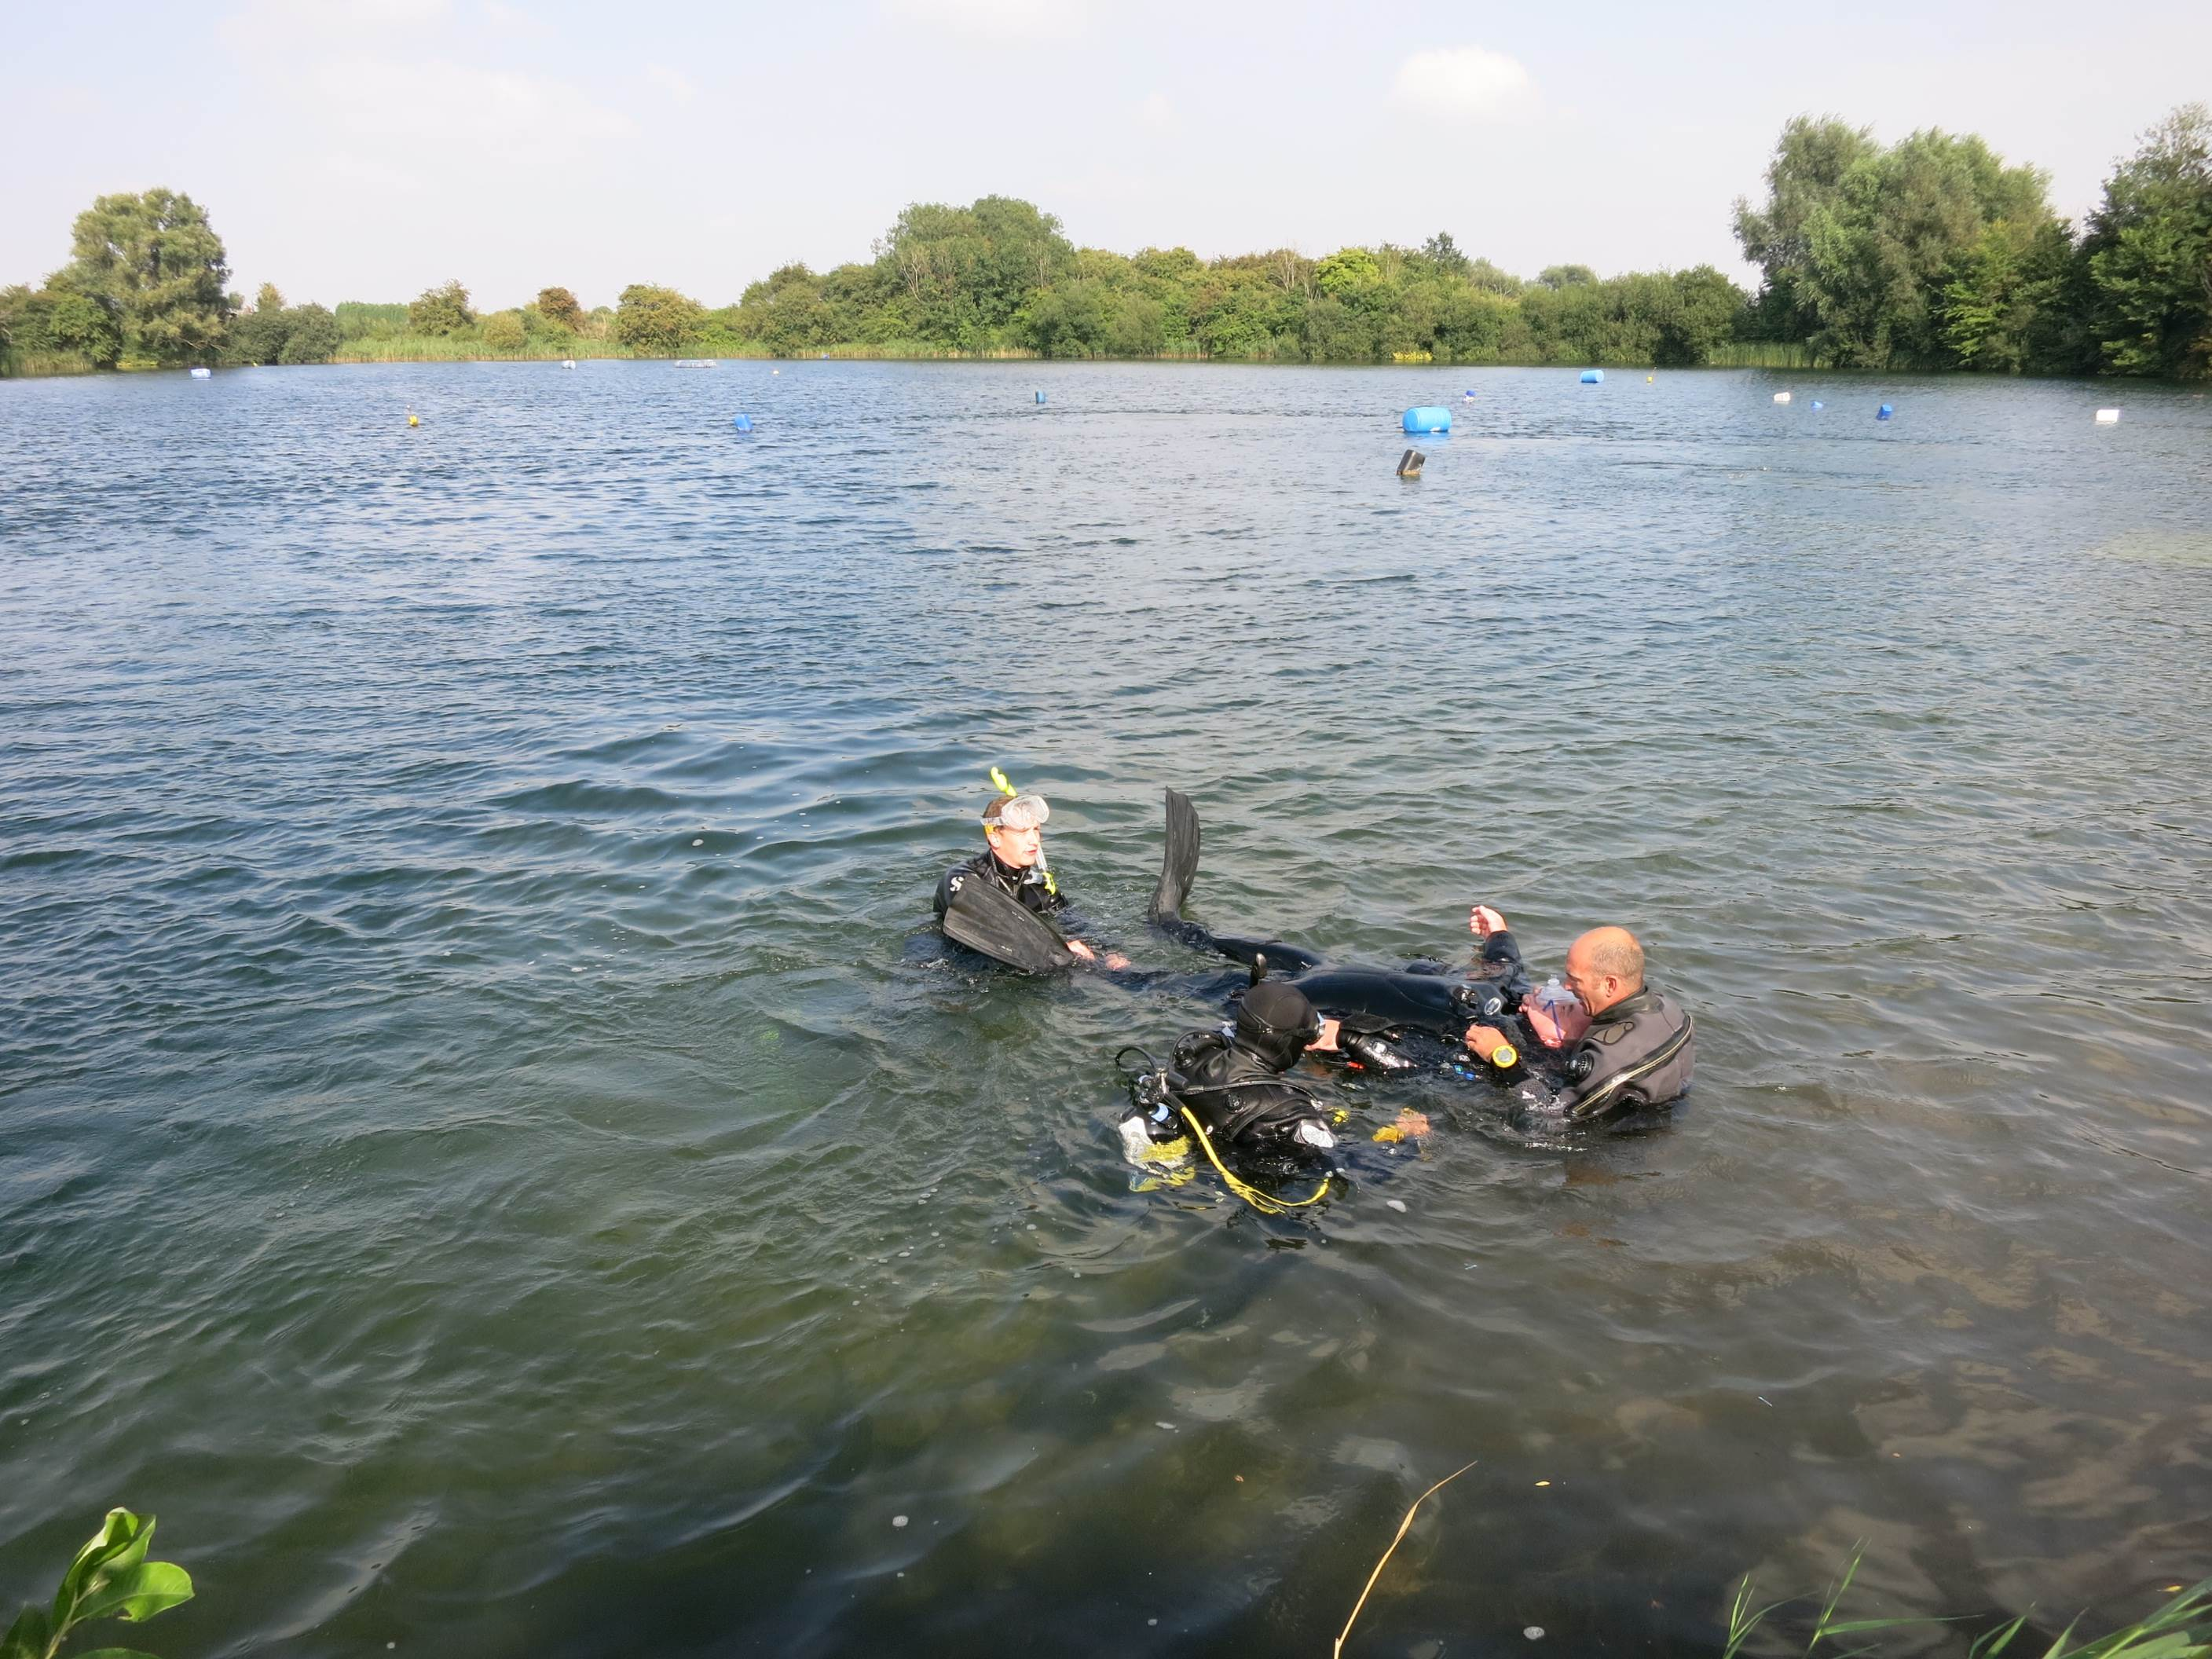 PADI Open Water Course Training Lake in Peterborough, Cambridgeshire